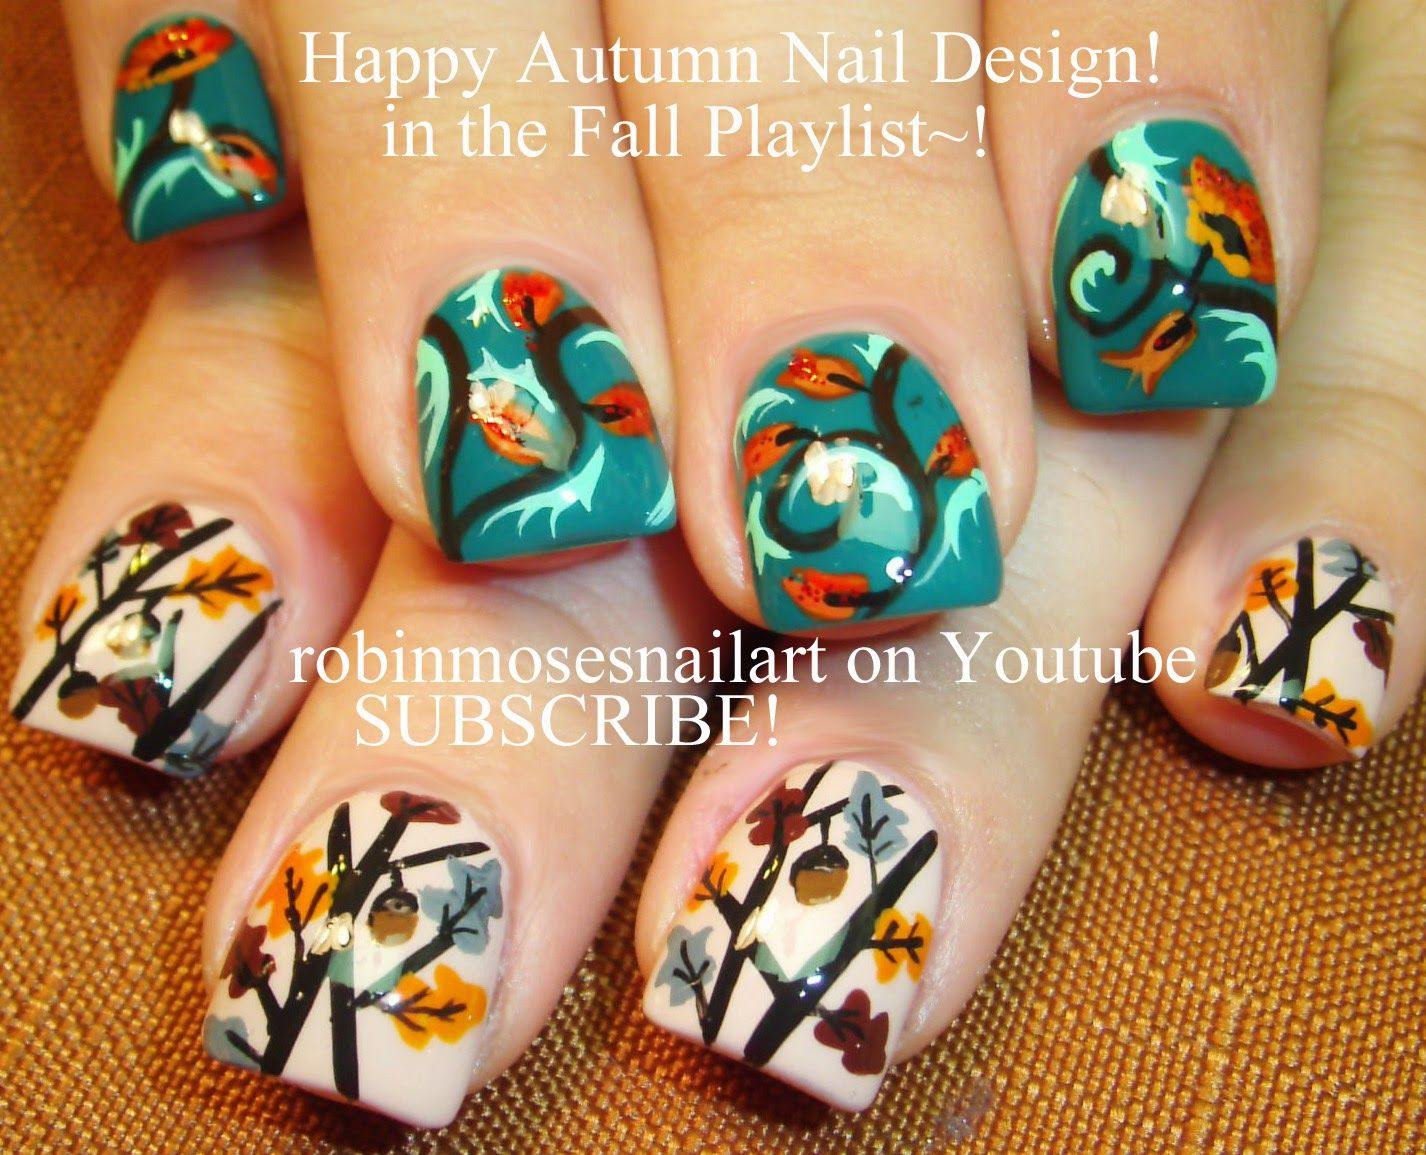 Thanksgiving pedicure designs nail art tutorials fall nail art fall leaves fall nail art fall nails easy fall leaves fall designs autumn nails autumn nail art diy fall nail art designs tutorial robin moses prinsesfo Image collections